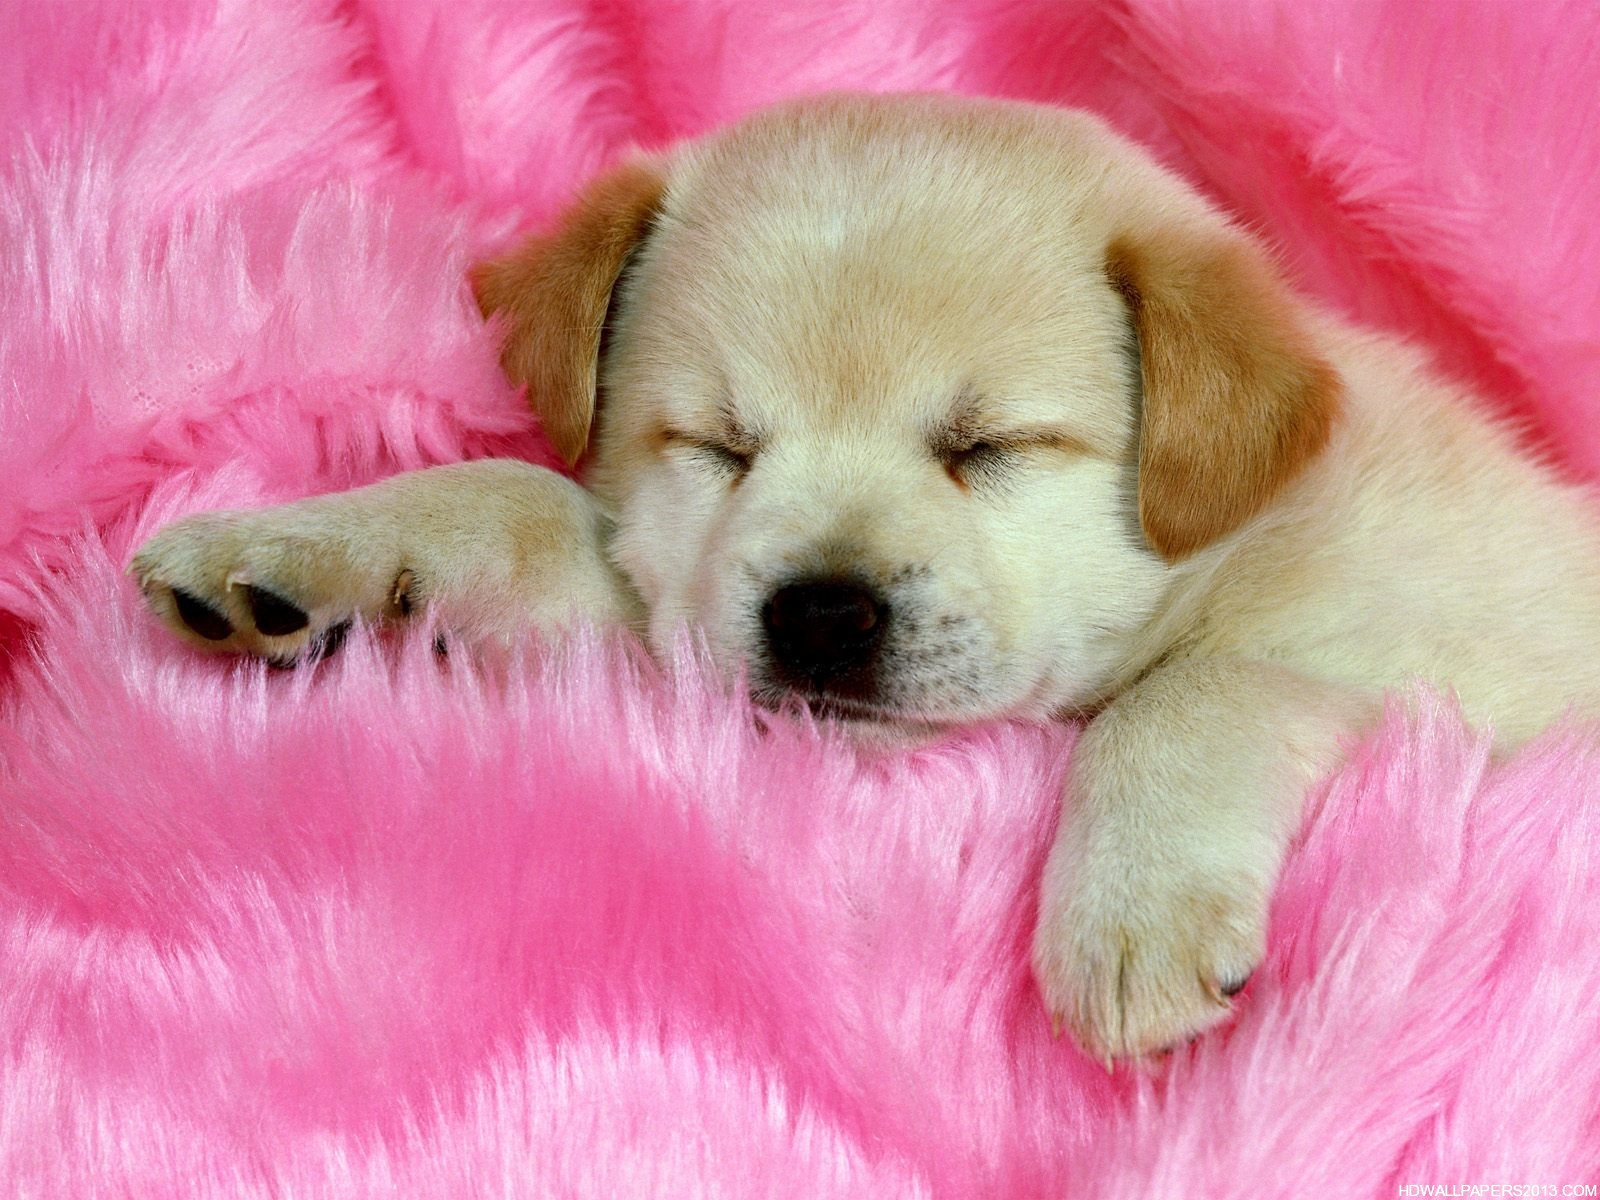 Cute Dogs Wallpapers | High Definition Wallpapers, High ...